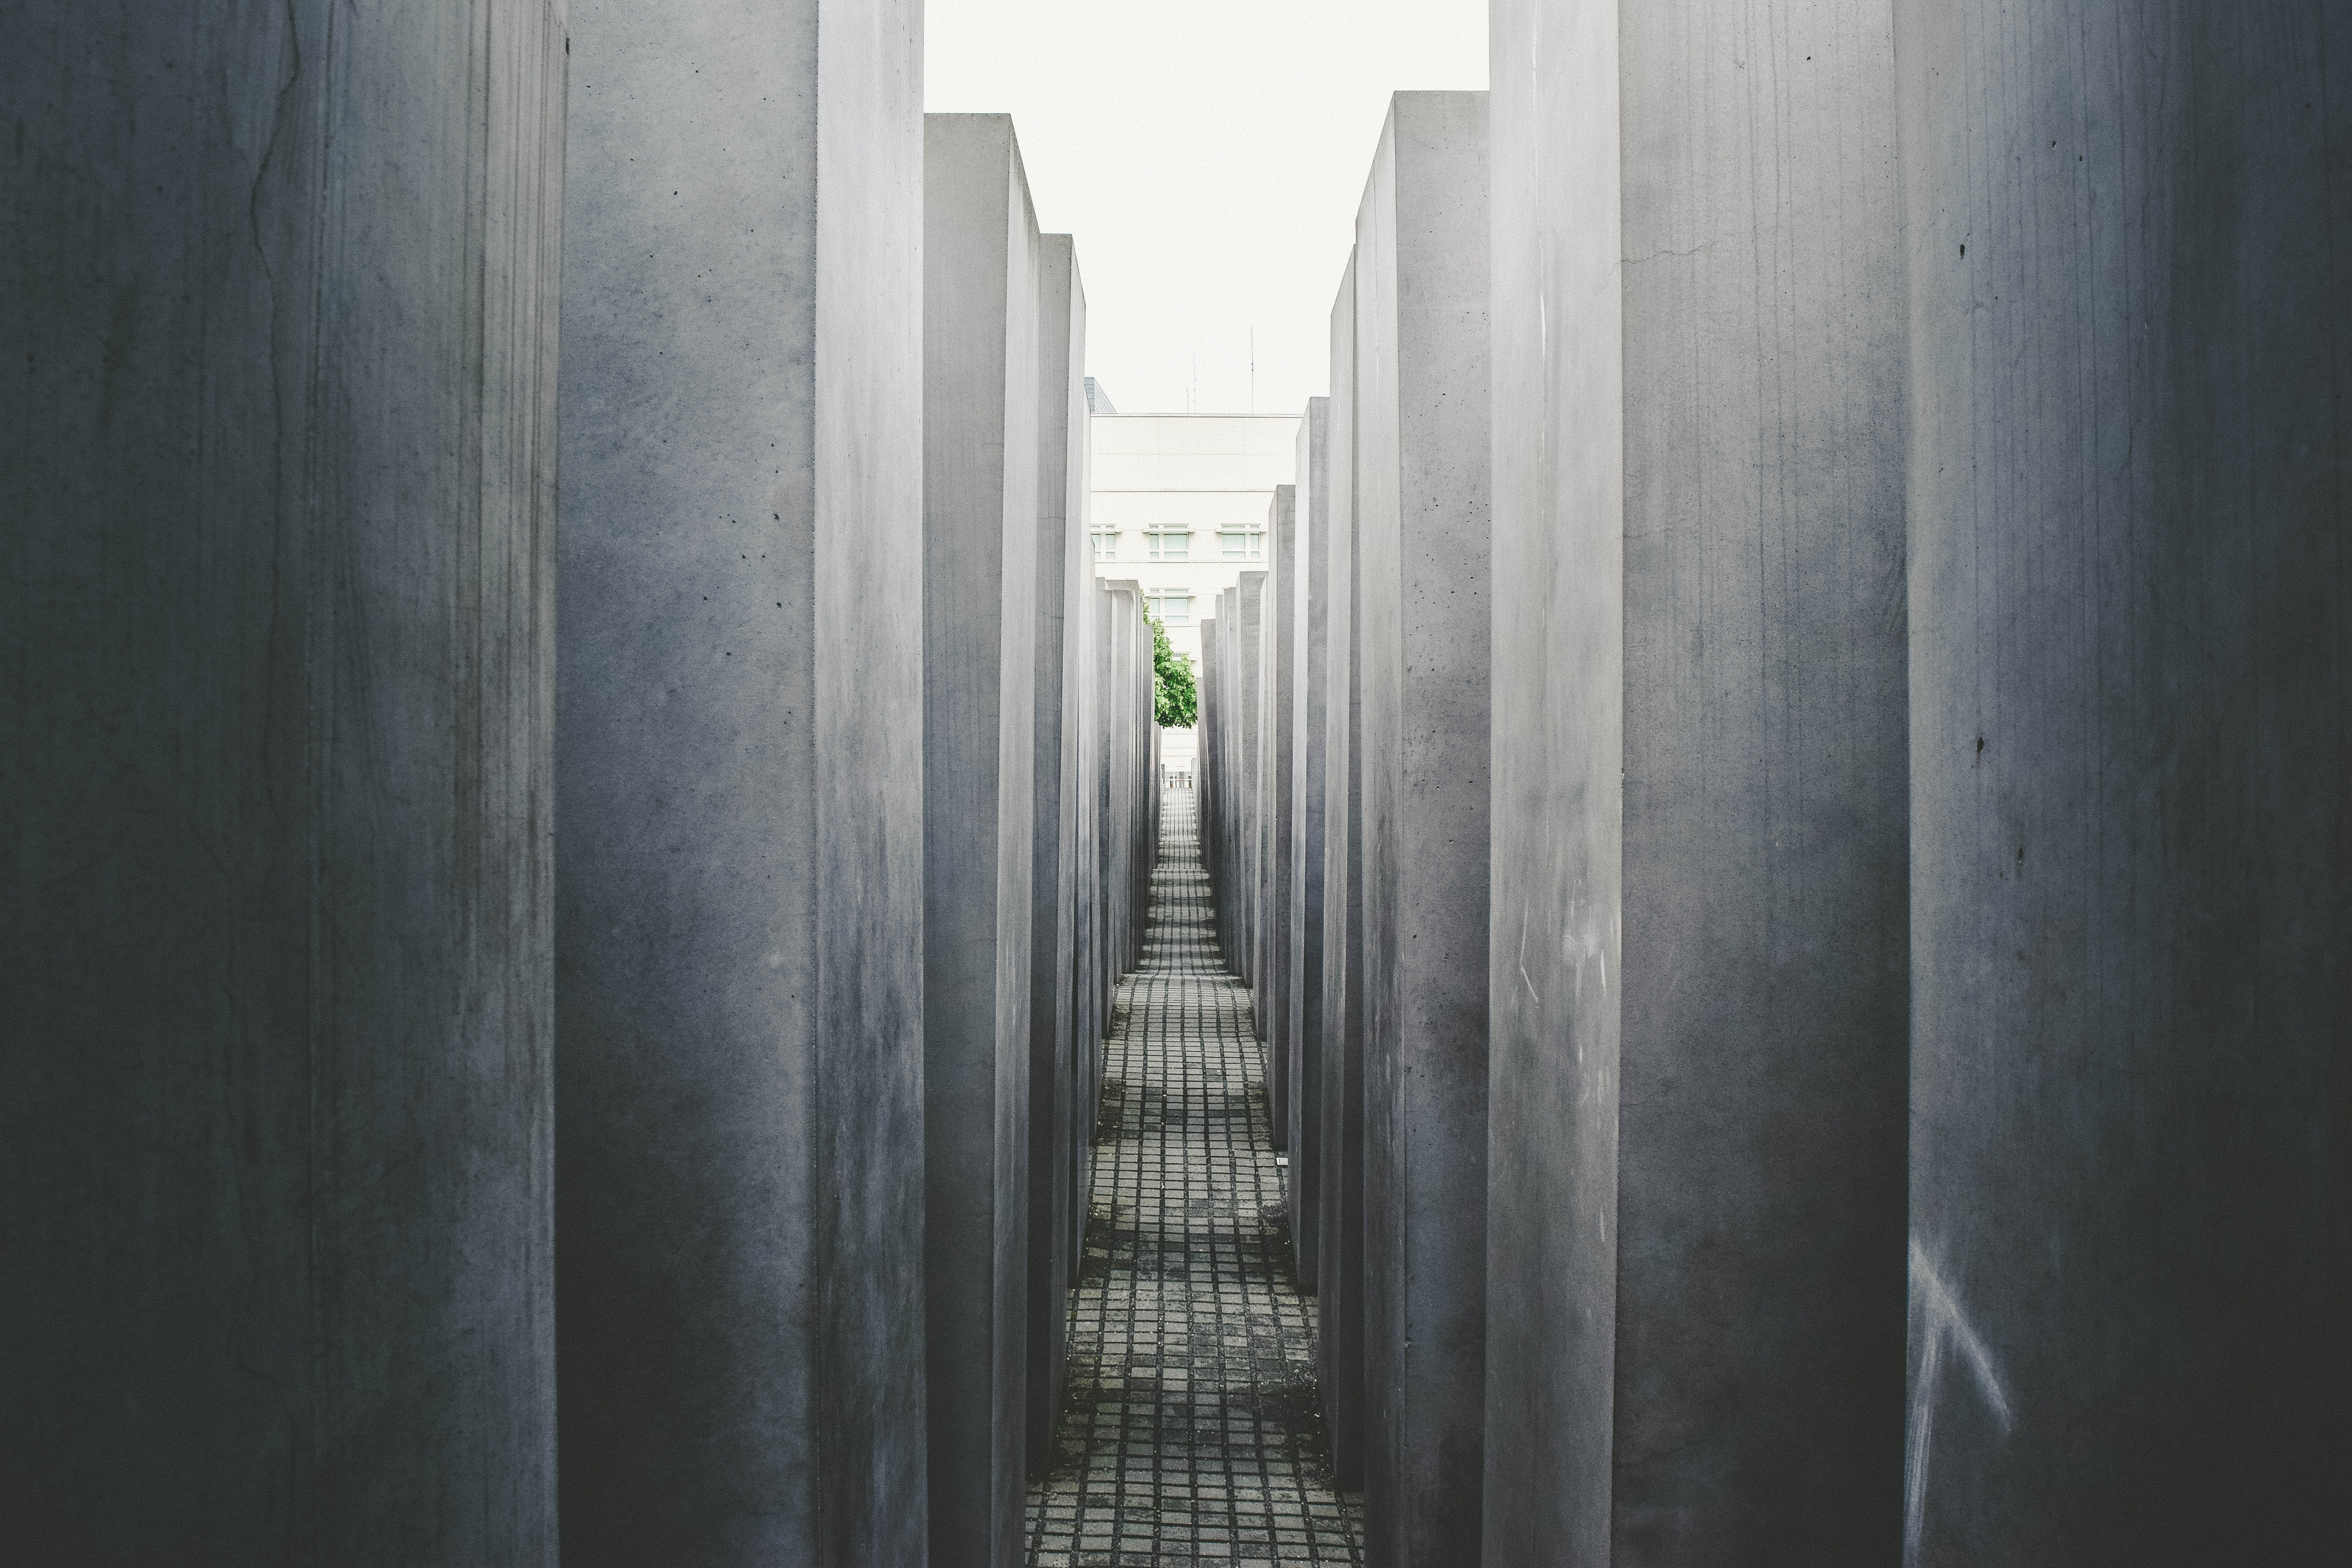 The narrow hallway leading through a piece of Berlin architecture